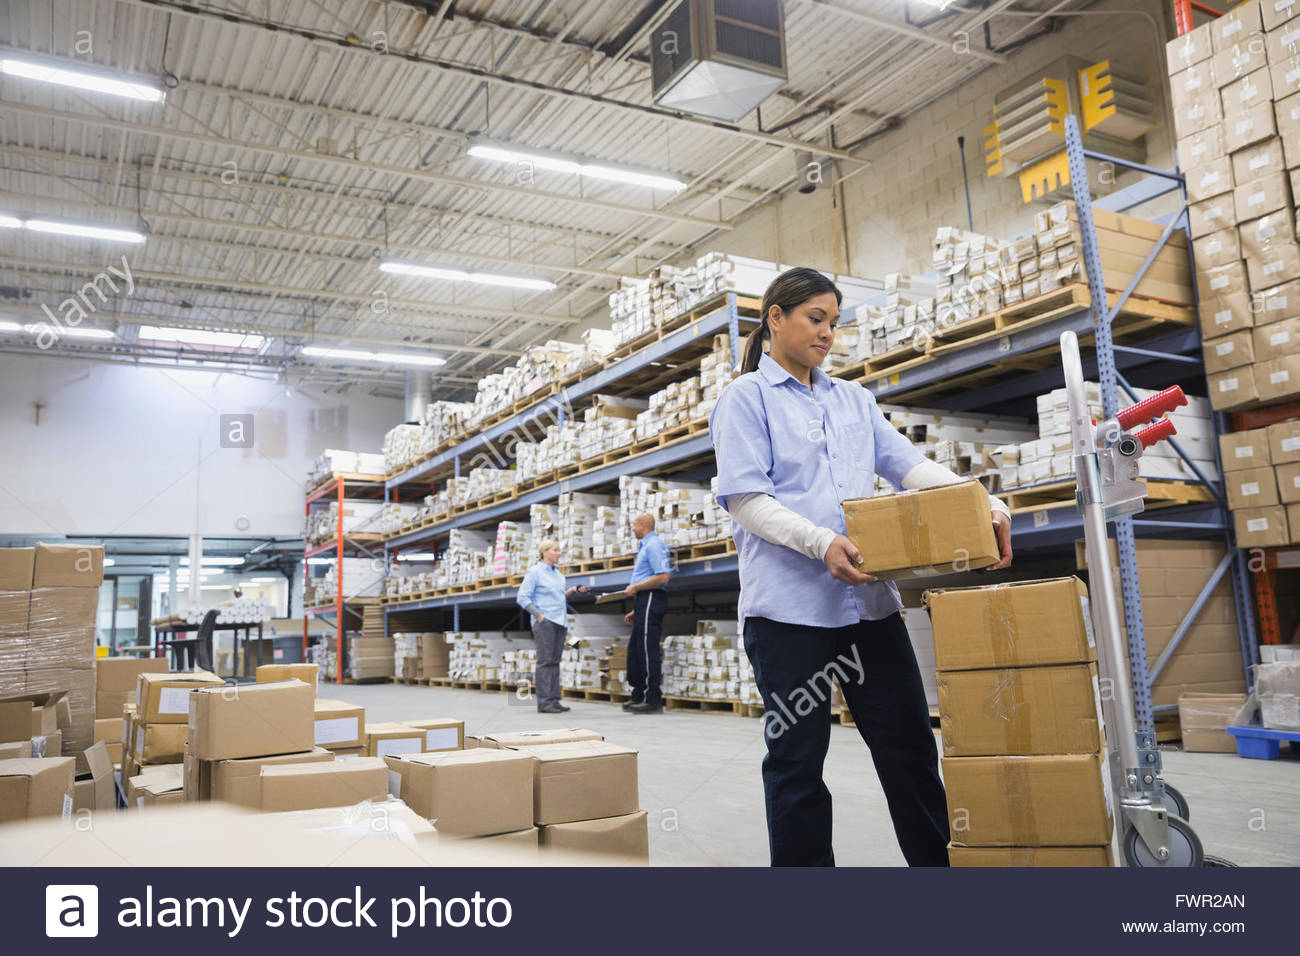 Female worker stacking boxes in warehouse Stock Photo